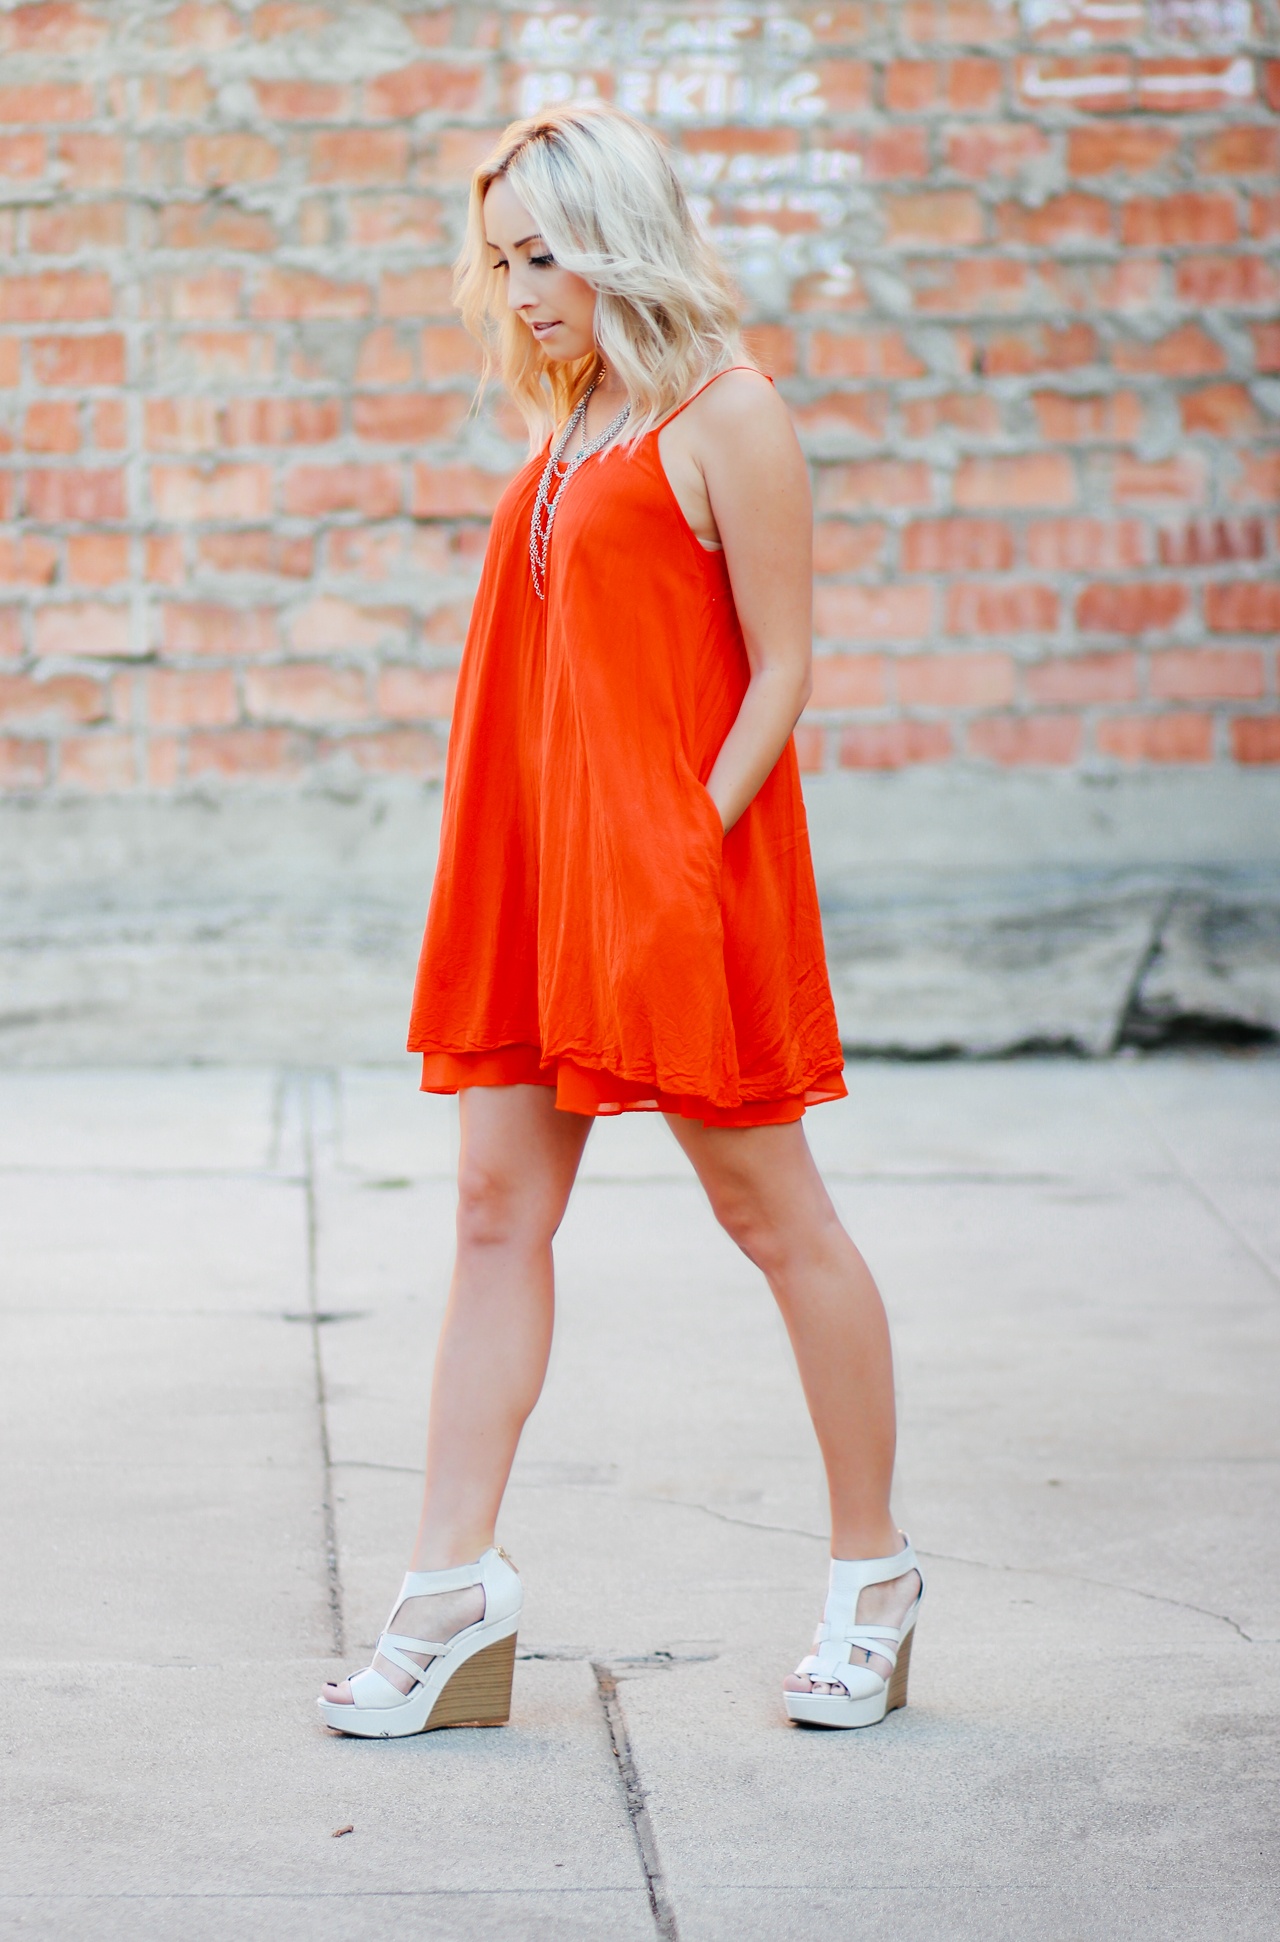 Blood Orange Armani Exchange Dress | StyledbyBlondie.com